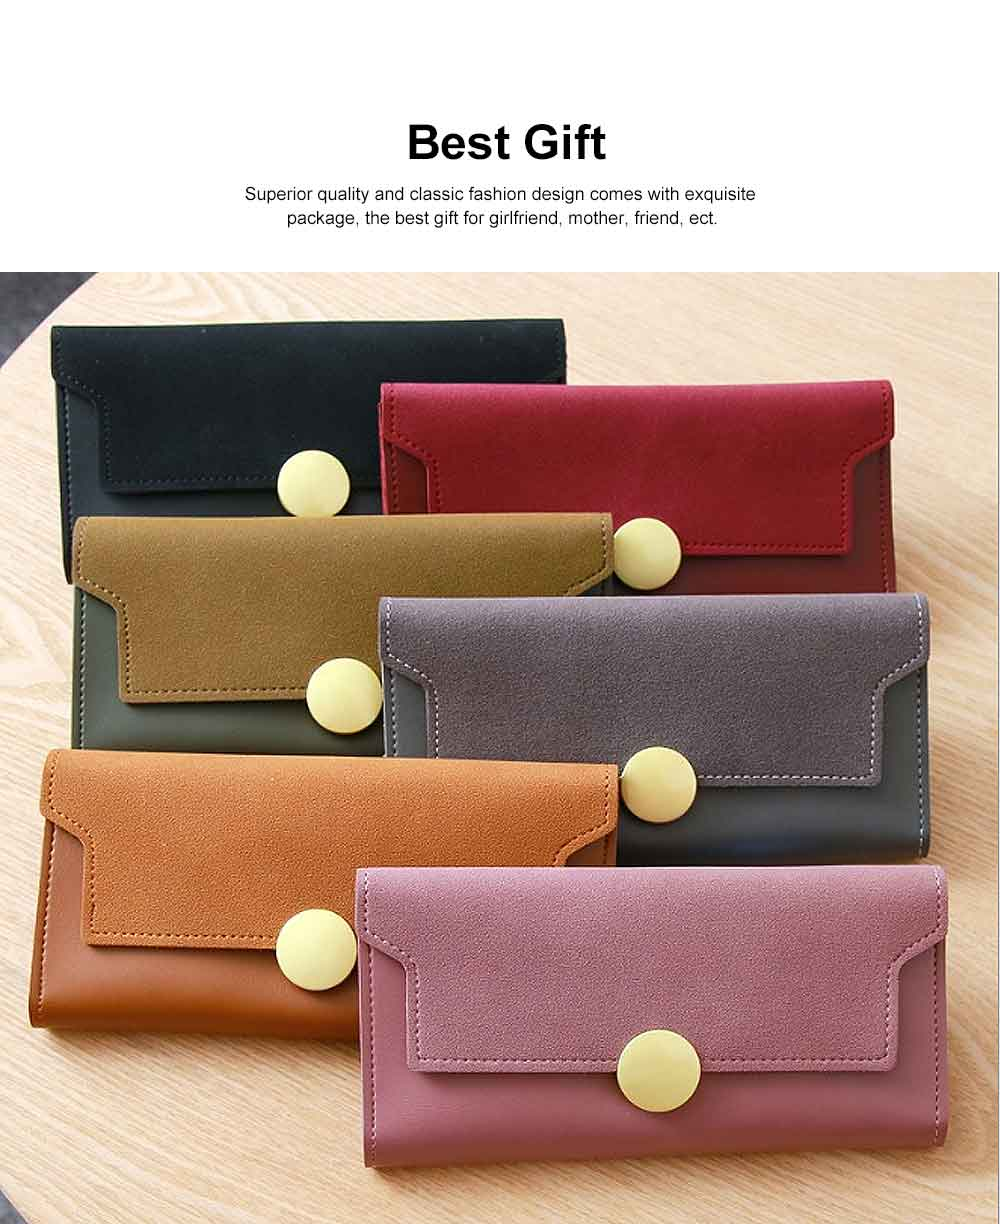 Lady Purse Retro Matte Ladies PU Leather Wallets Women Fashion Long Travel Clamshell Purse Clutch 5